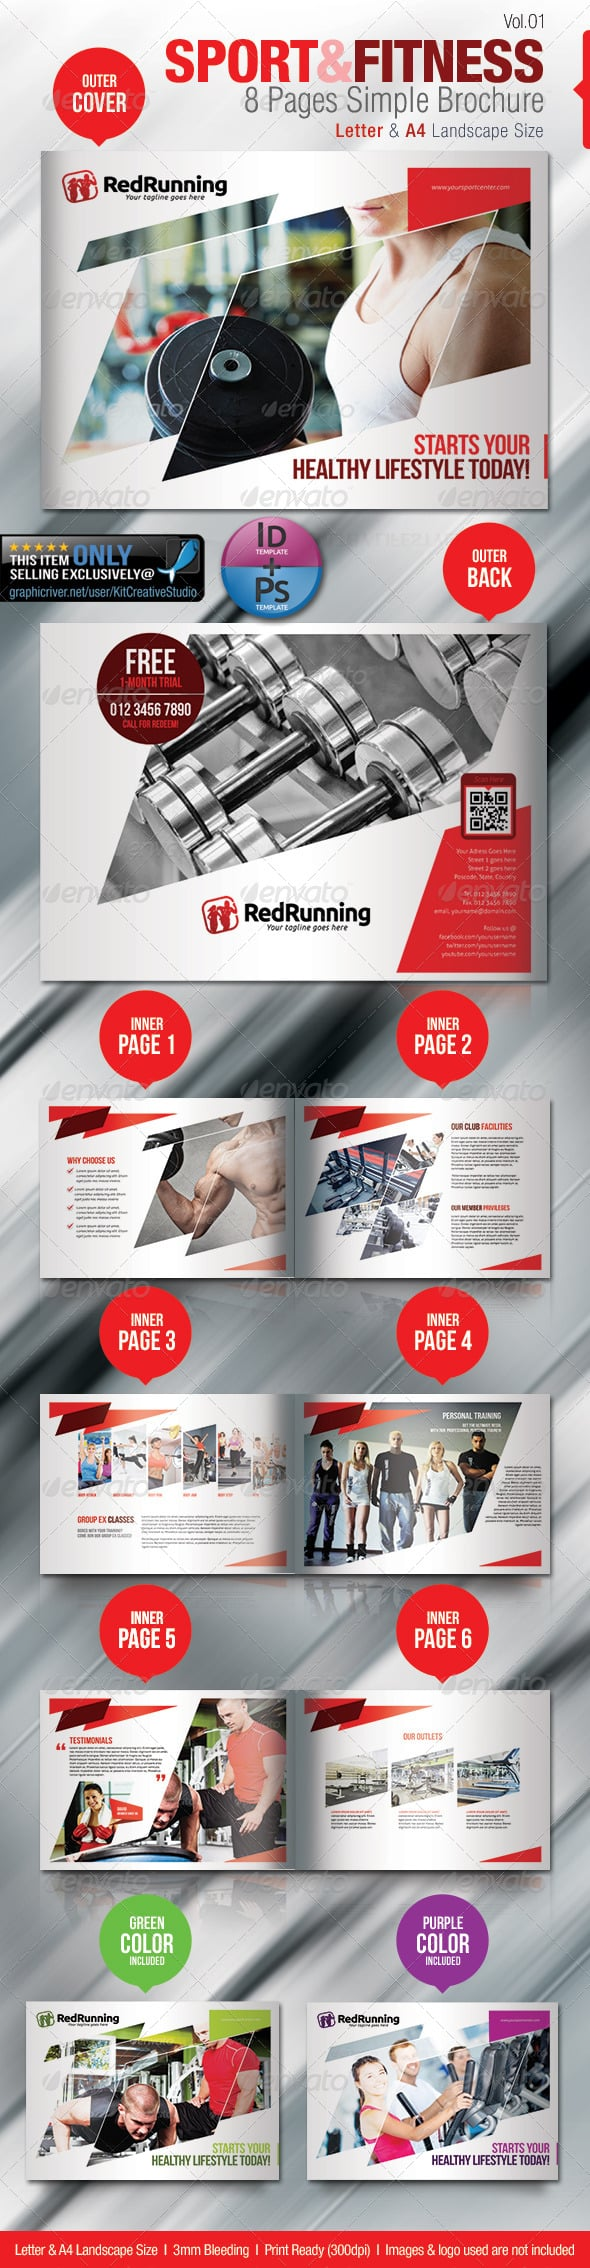 Fitness & Sport 8 Pages Simple Brochure